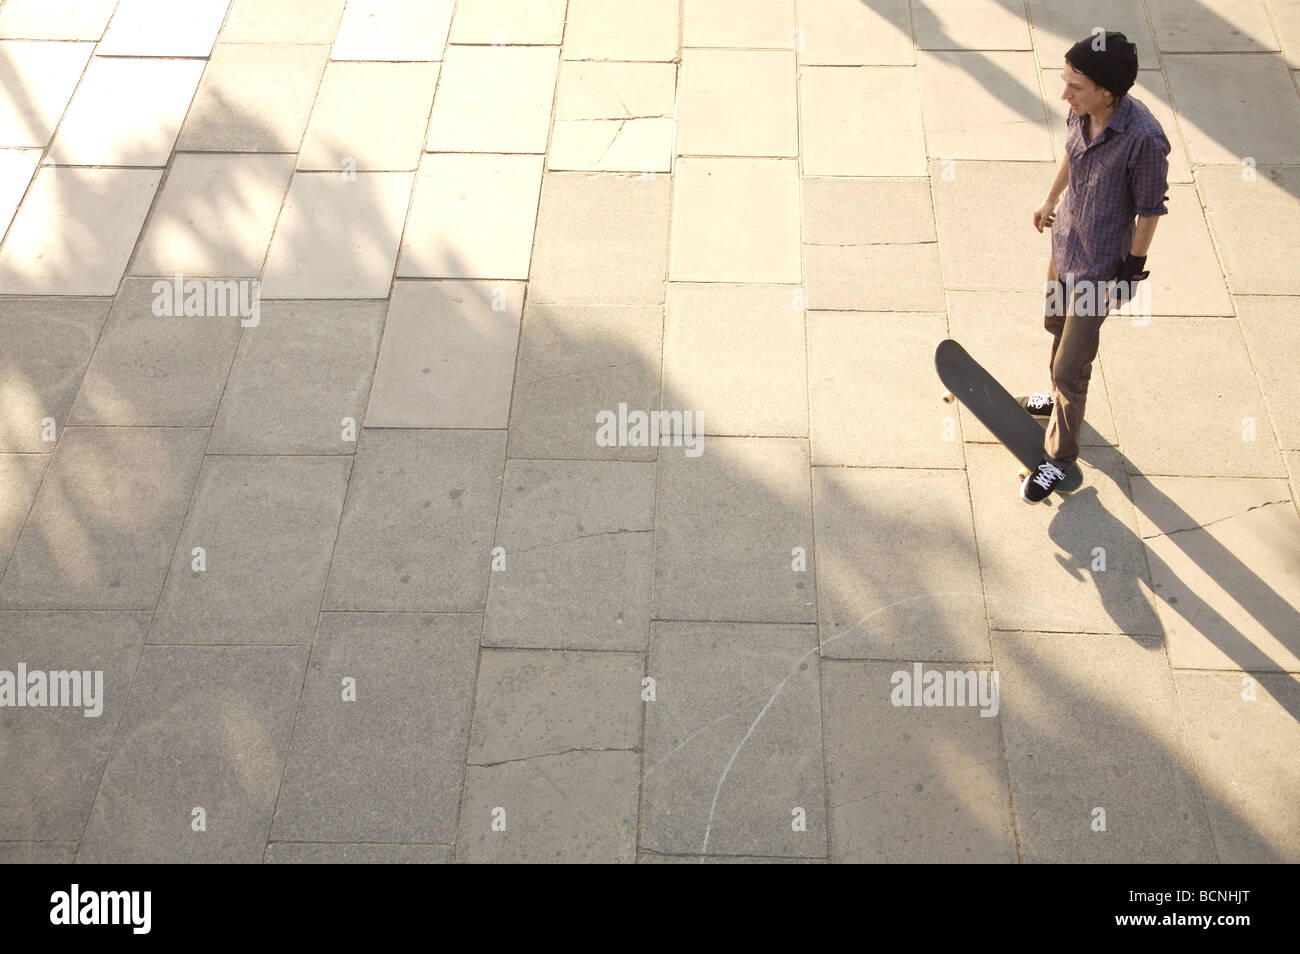 Skater with Shadows on Southbank - Stock Image